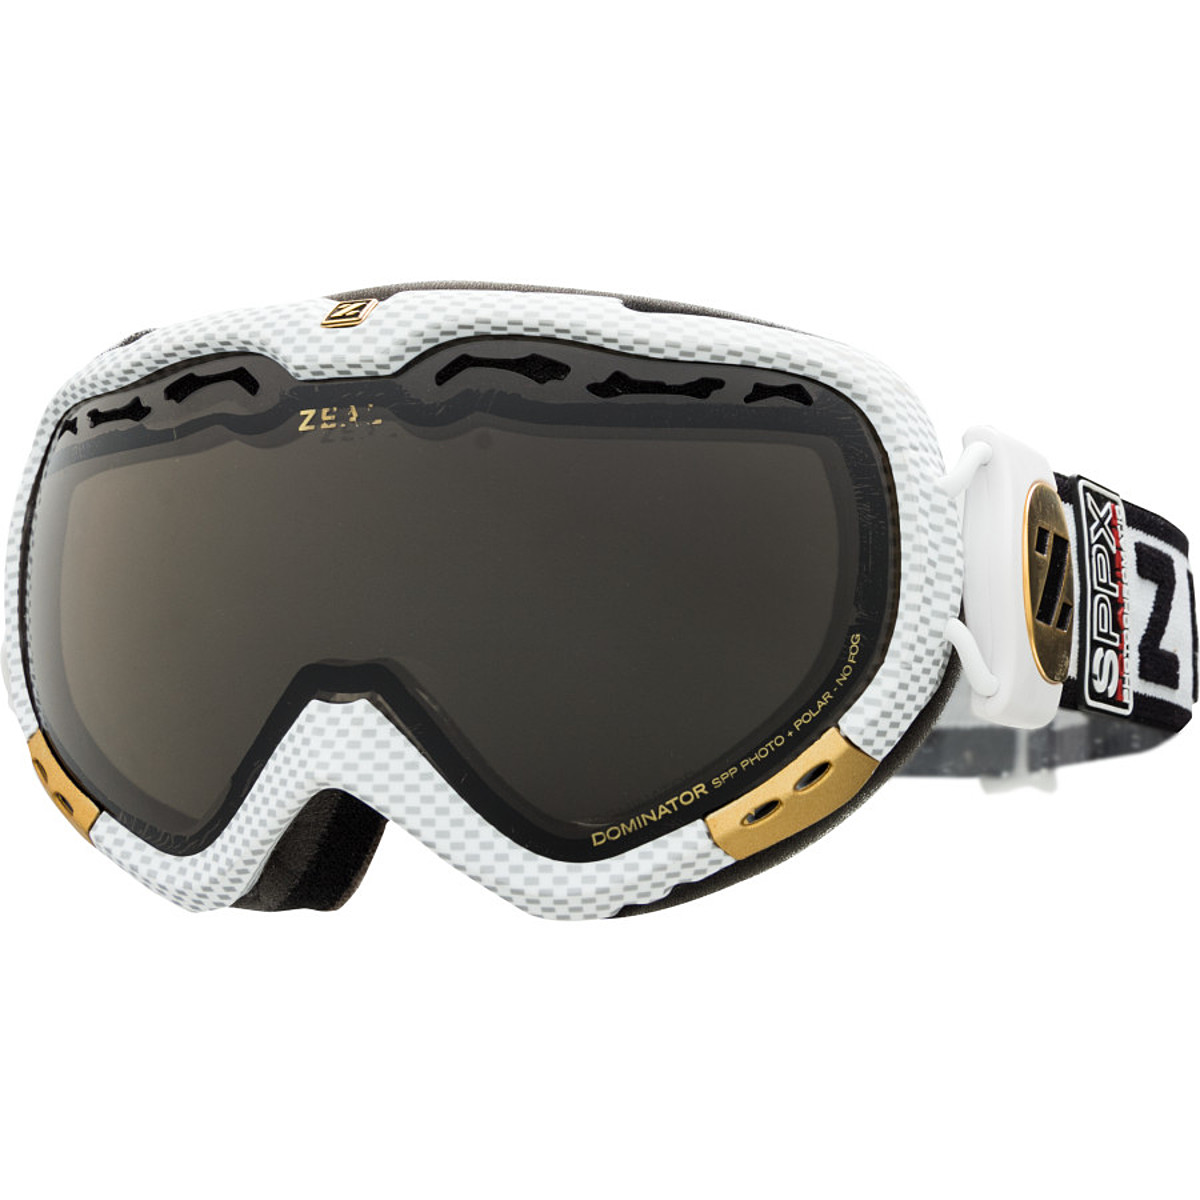 photo: Zeal Dominator goggle